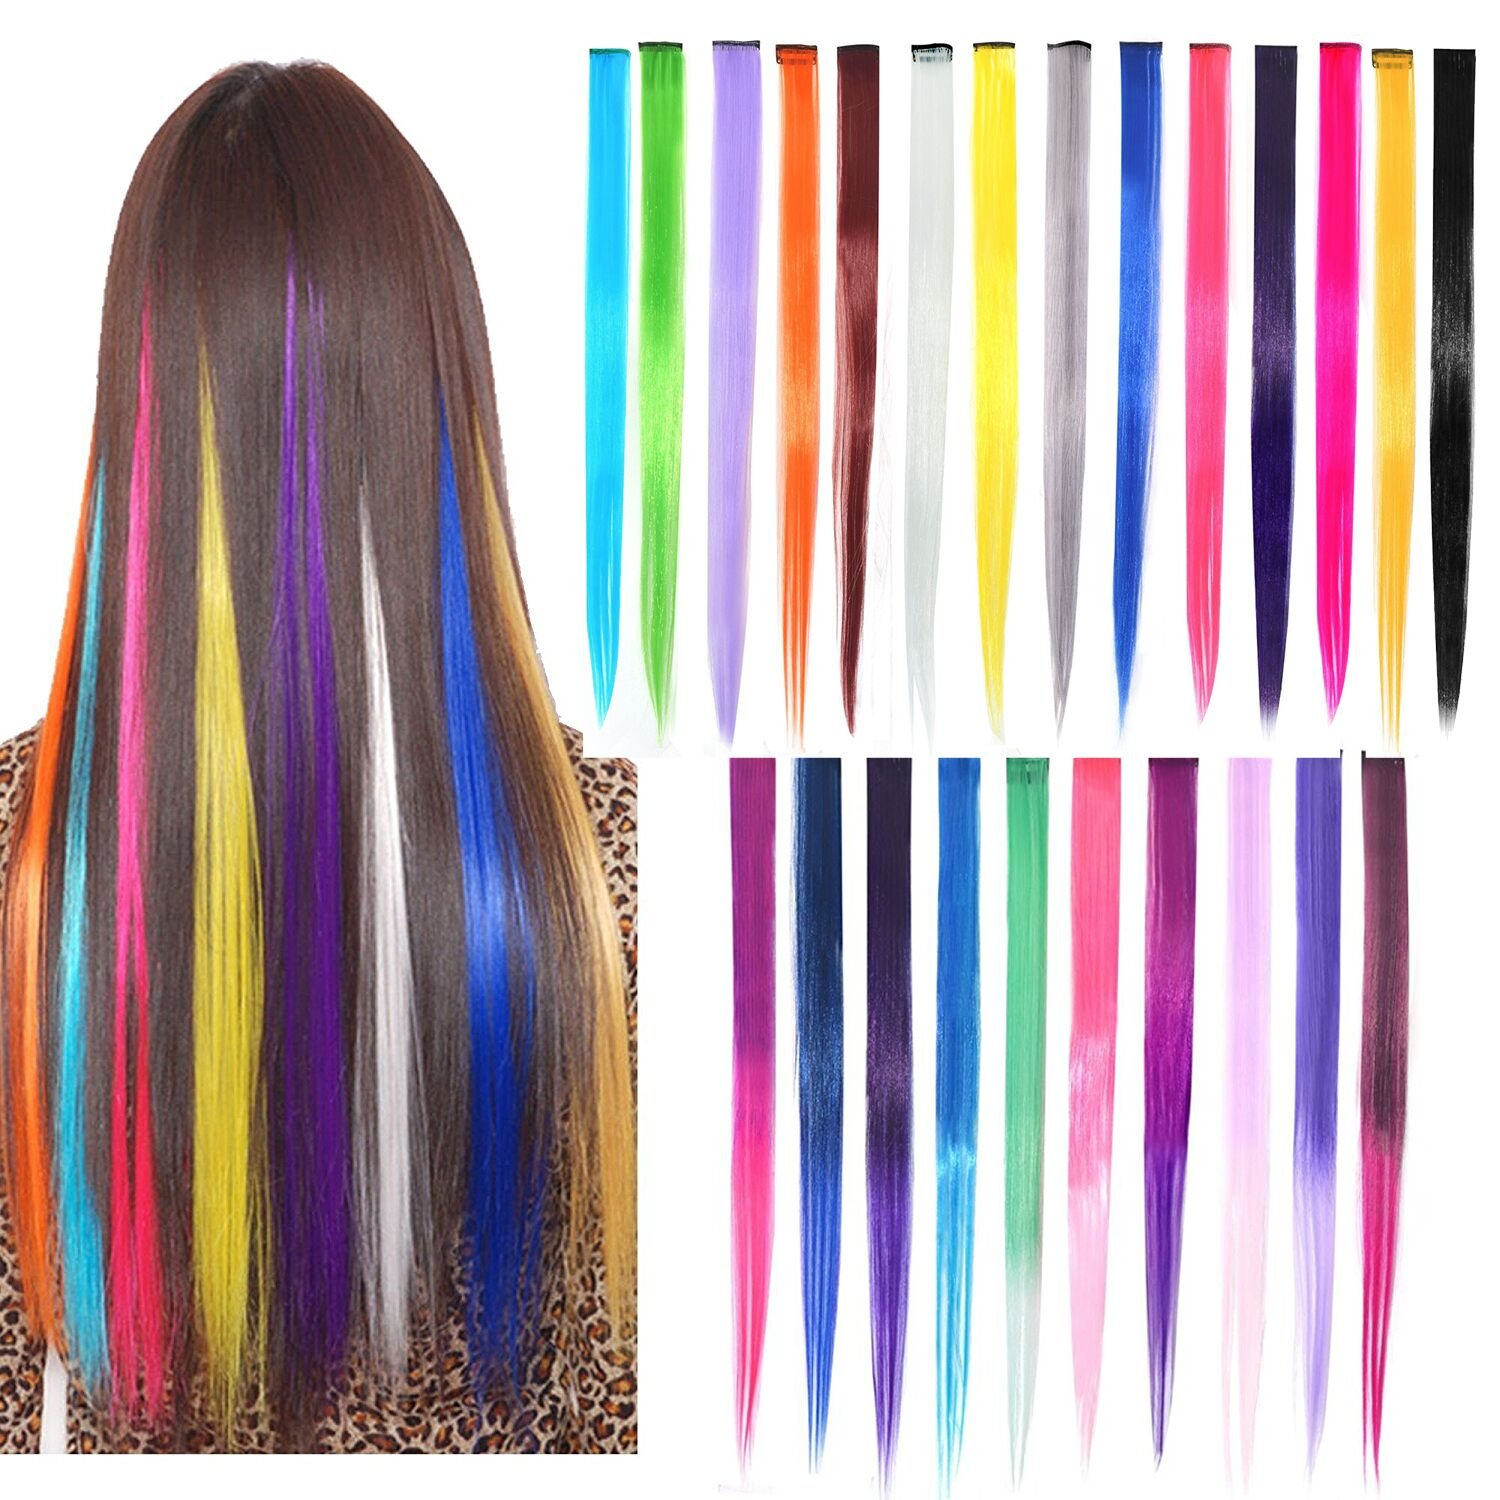 30pcs Clip in Hair Extensions 22 Gradient Color Straight and Curly Fashion Hairpieces Rainbow Hair Extensions, YSKF 30 Colors Party Highlights Colorful Clip In Synthetic Hair Extensions YSLF